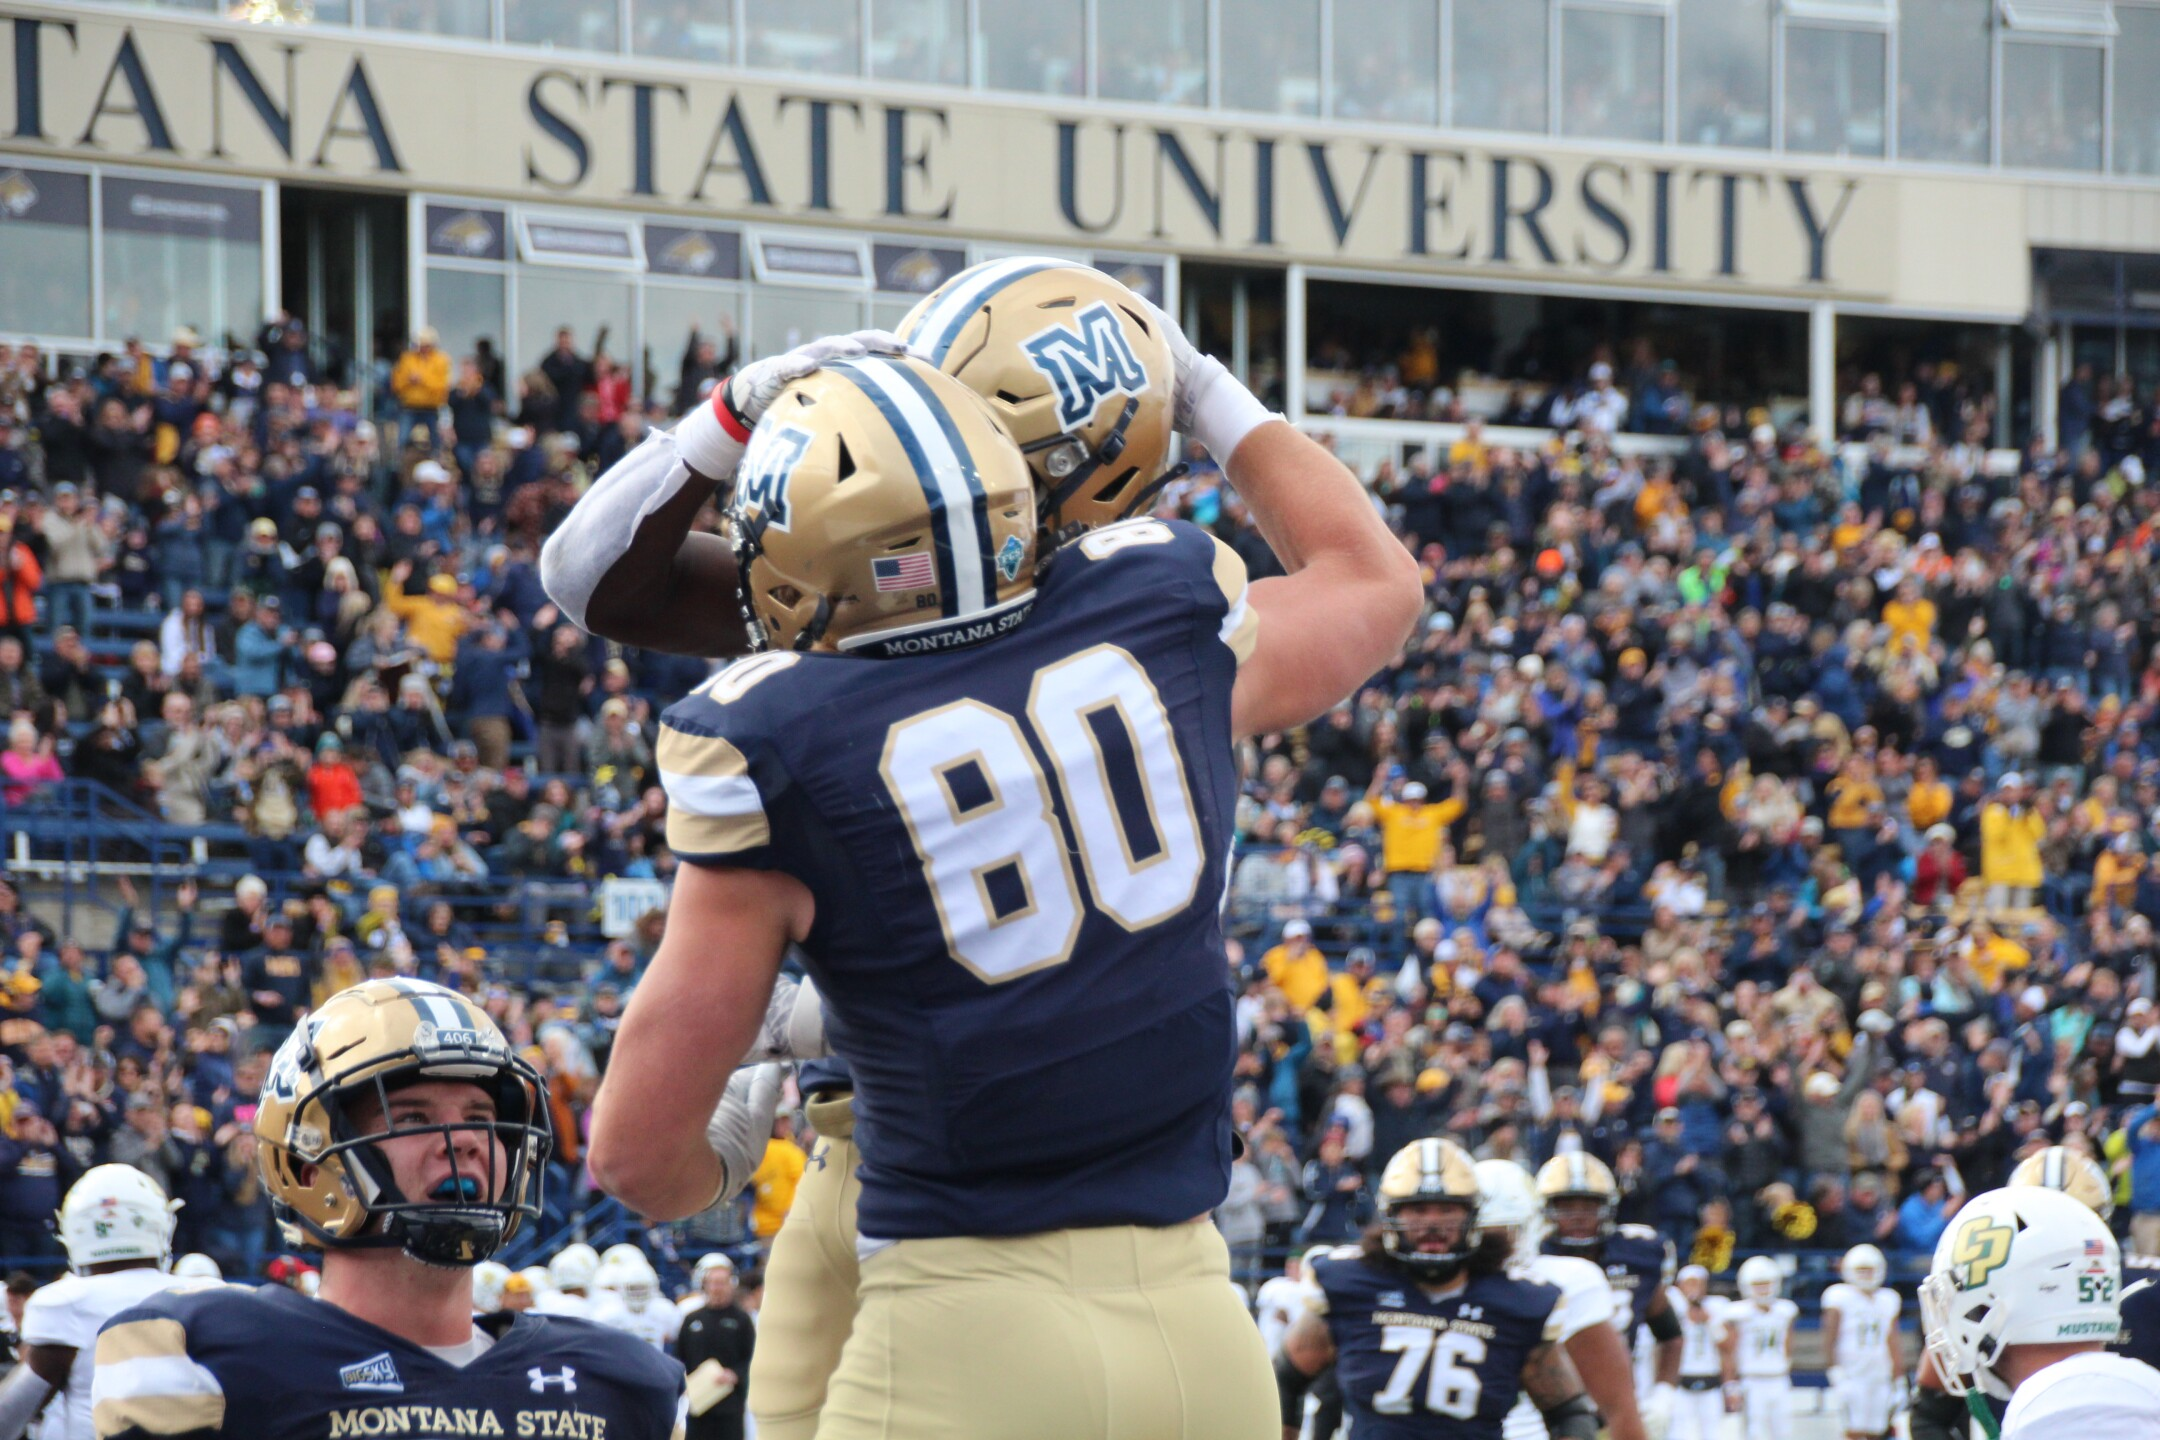 Treyton Pickering celebrates a touchdown grab in the first quarter